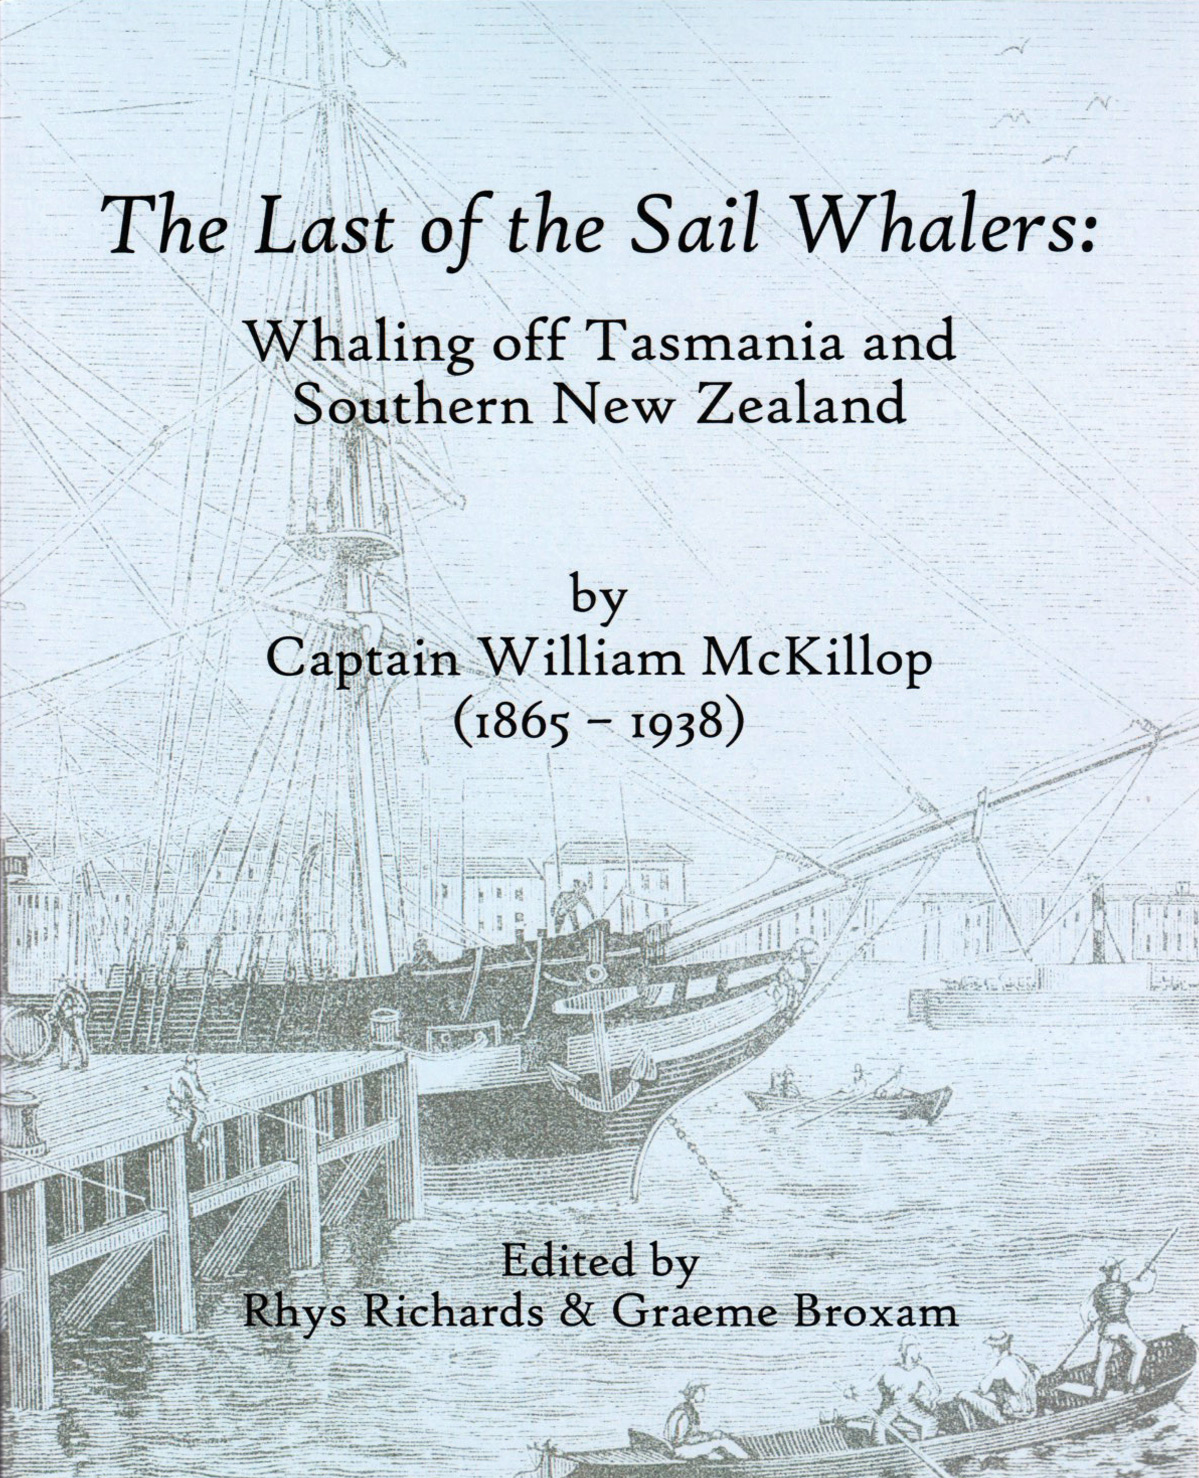 The Last of the Sail Whalers